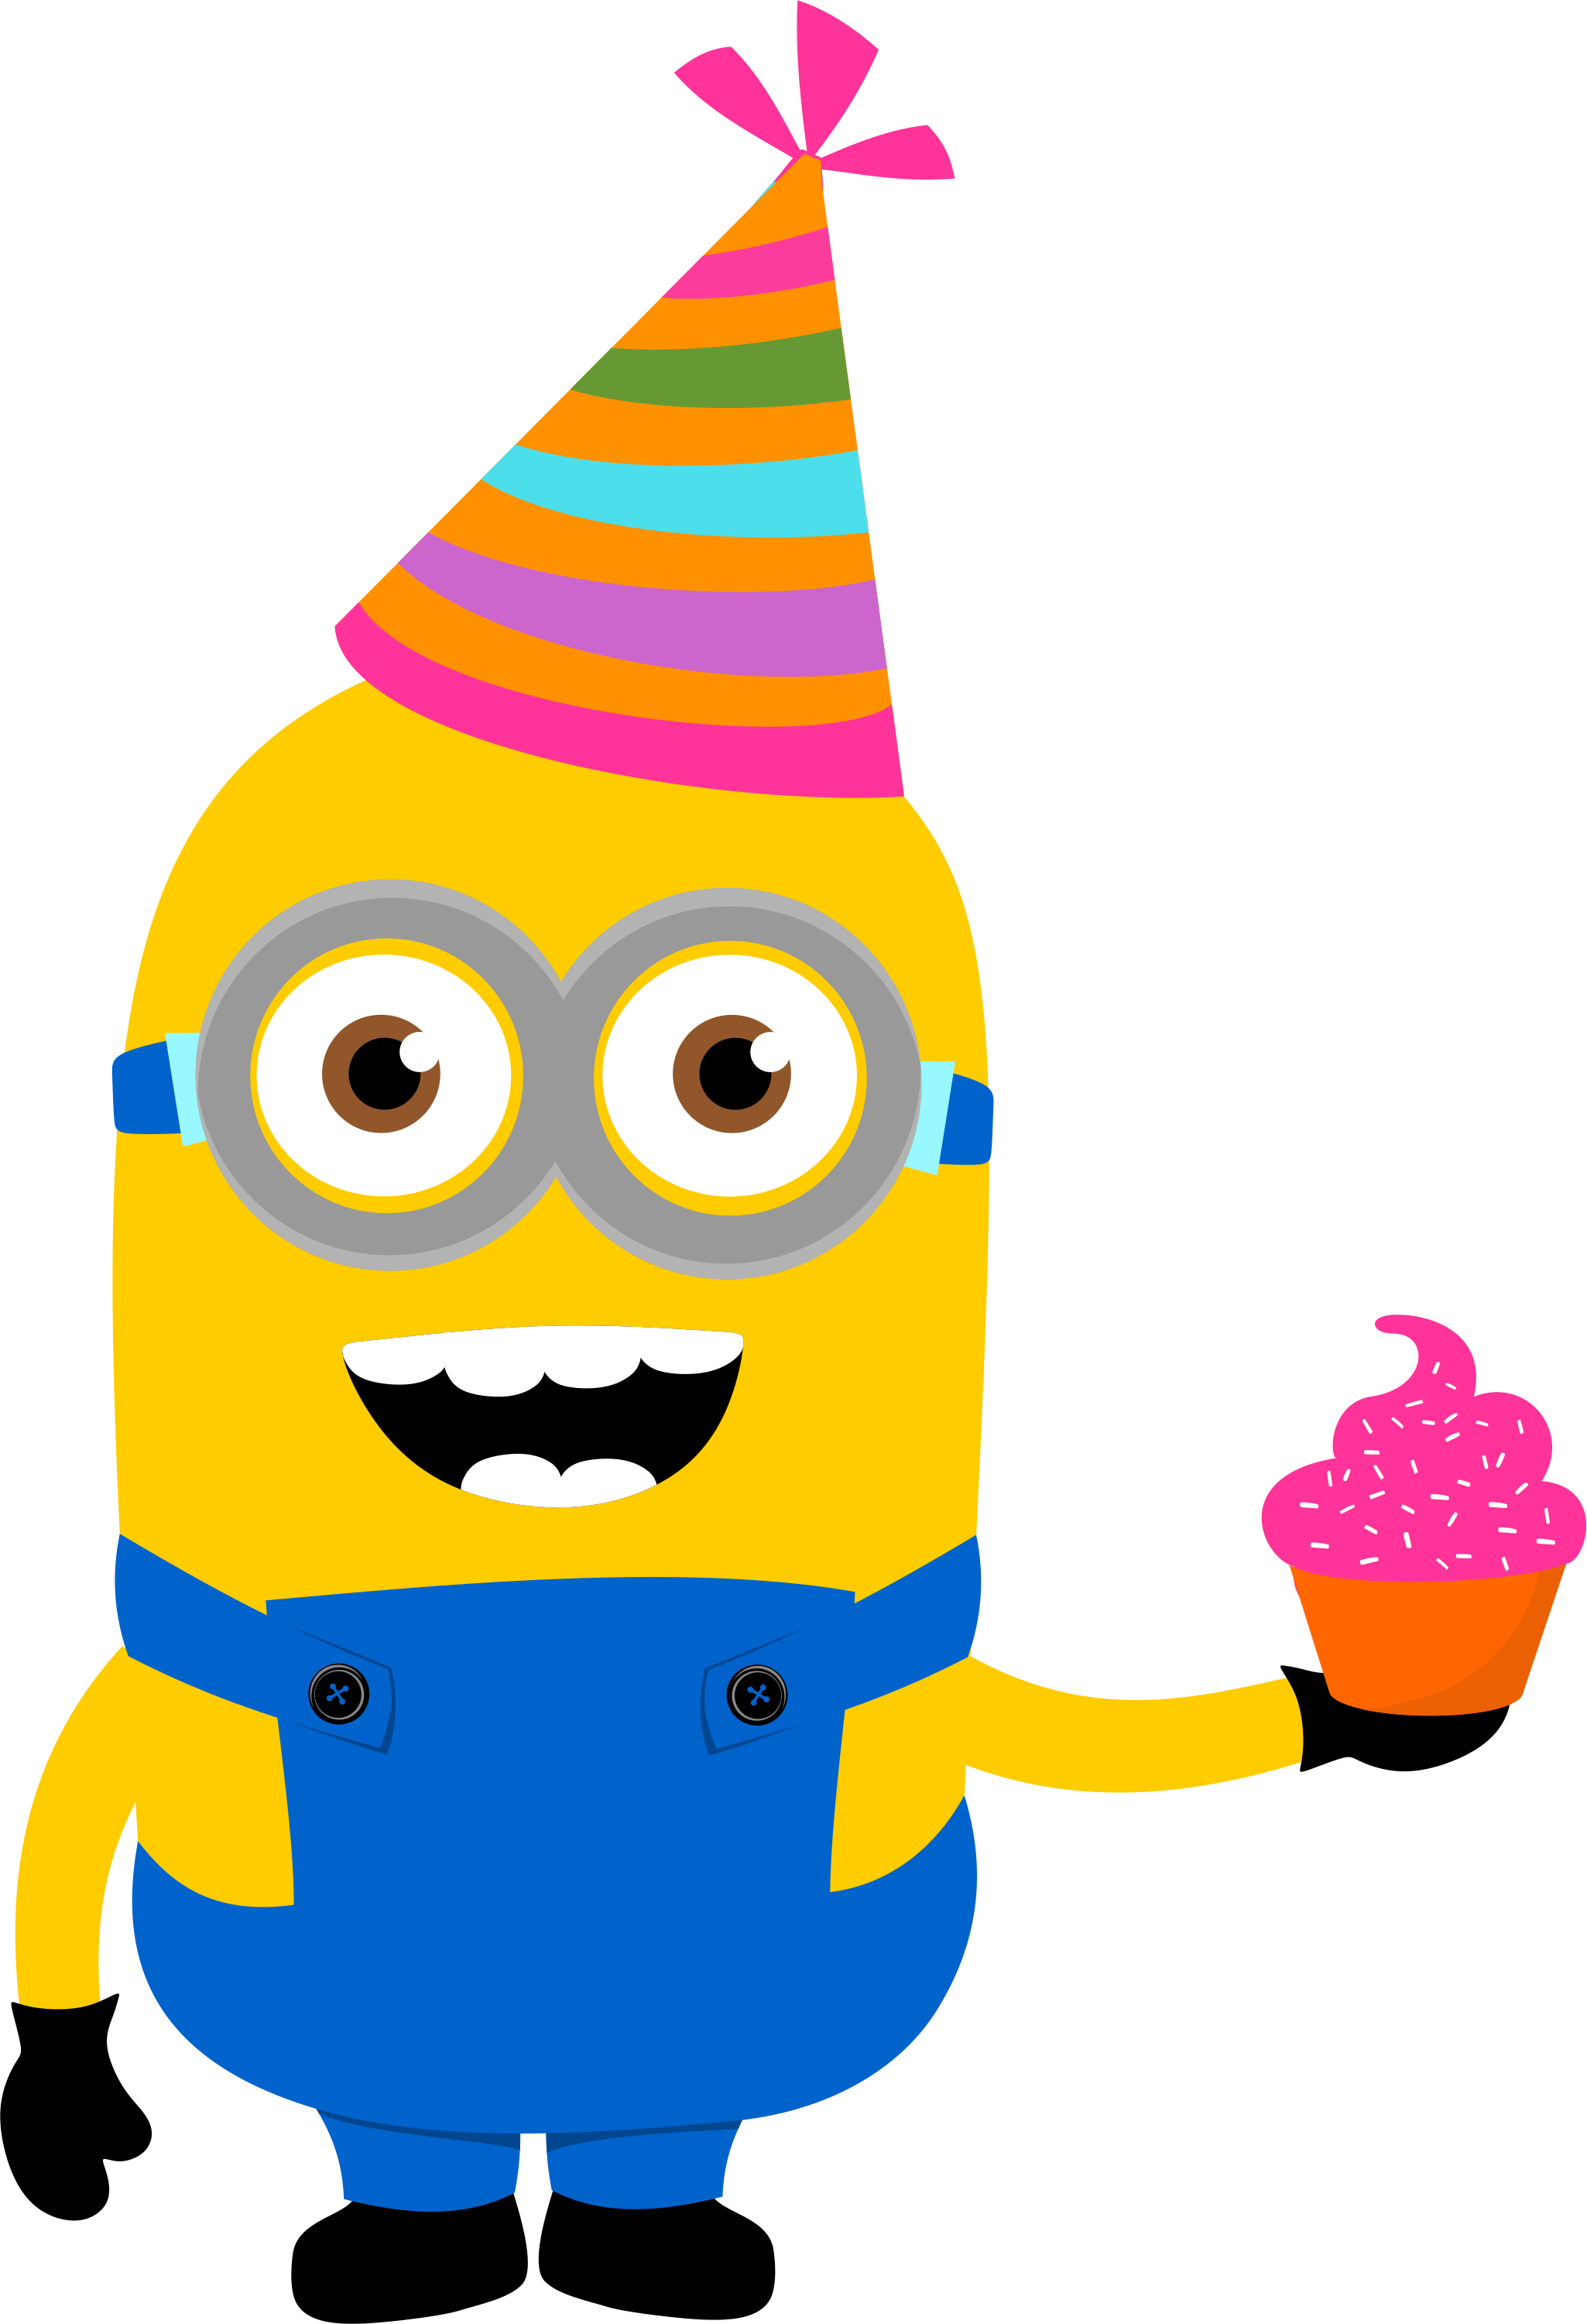 Surprise clipart birthday party supply. Minion png cupc k